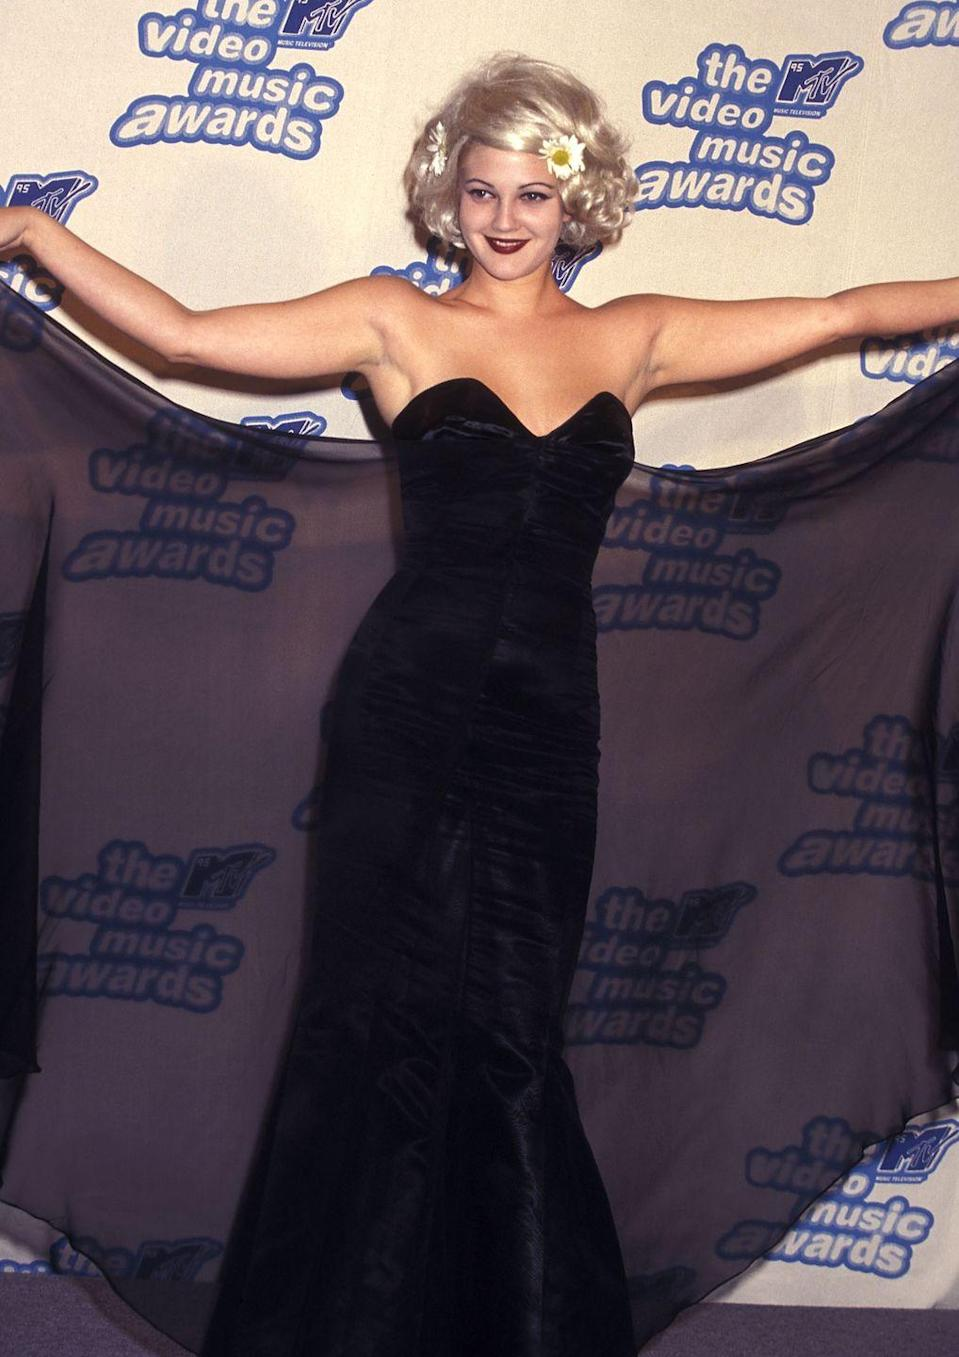 <p>With a dark lip and bright flowers in her hair, Drew Barrymore is bringing loads of contrast and fashun to the 1995 awards show. </p>